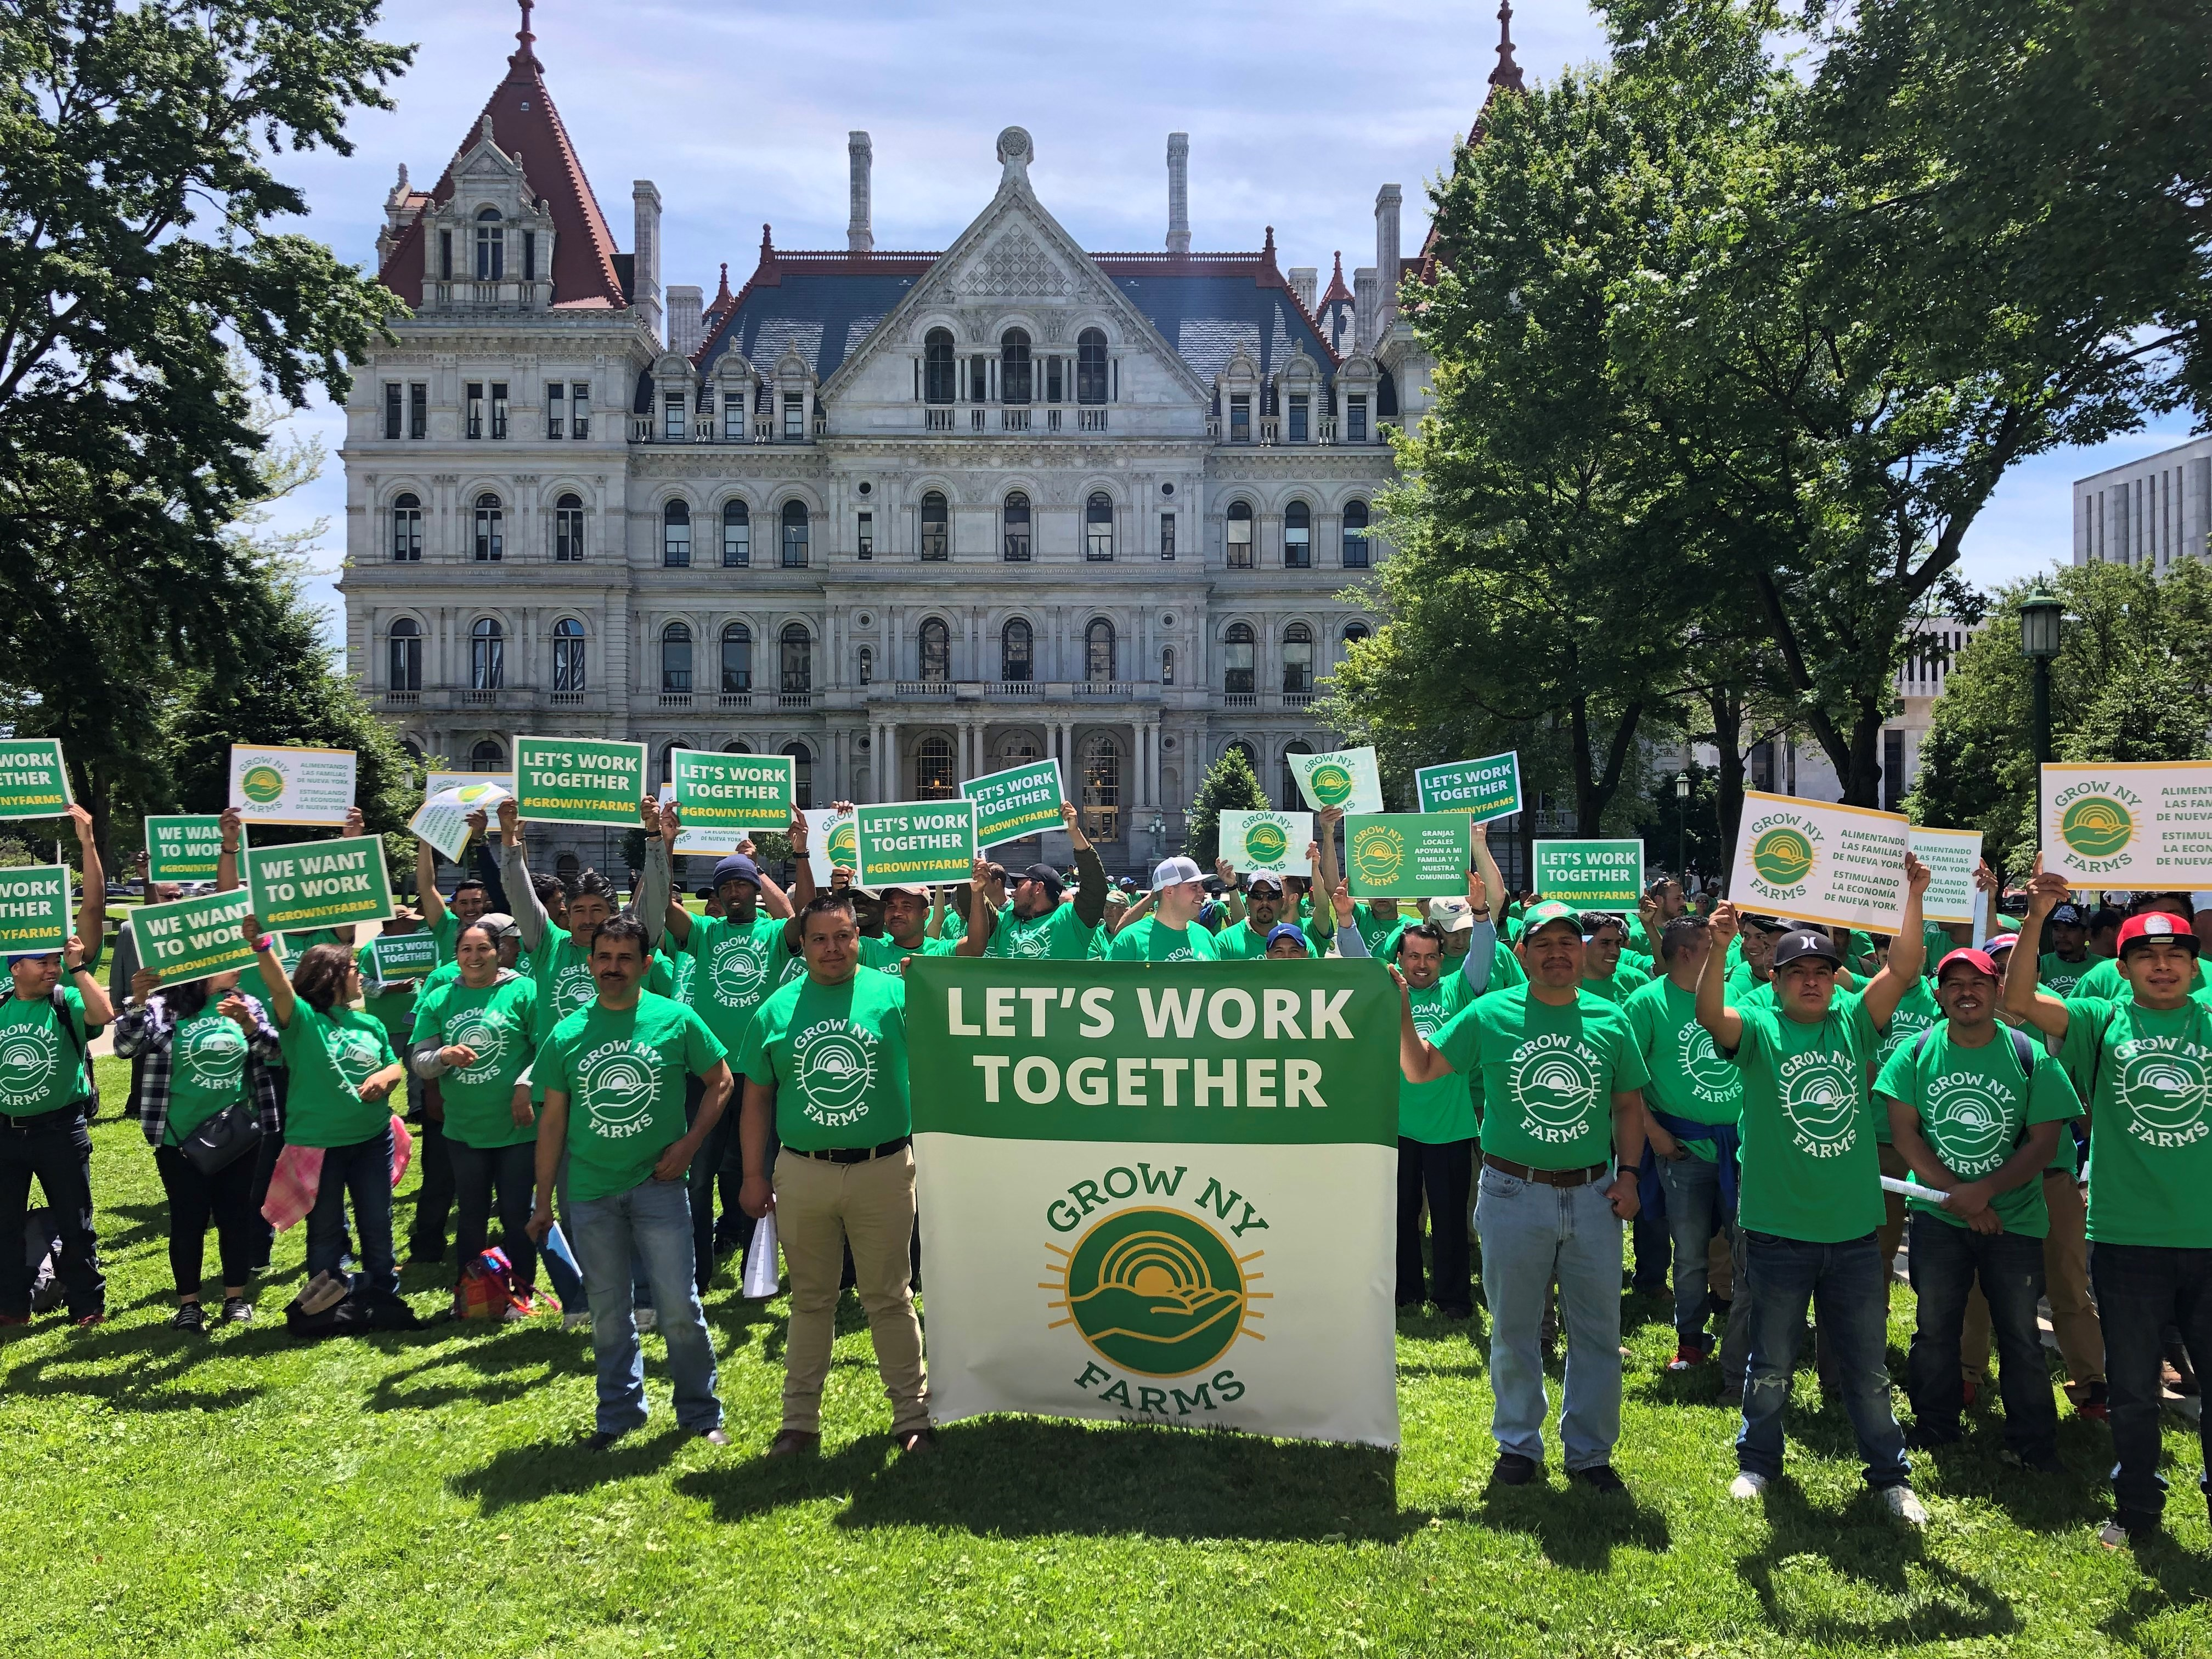 News Release: More Than 300 Farmers And Farmworkers Visit Albany